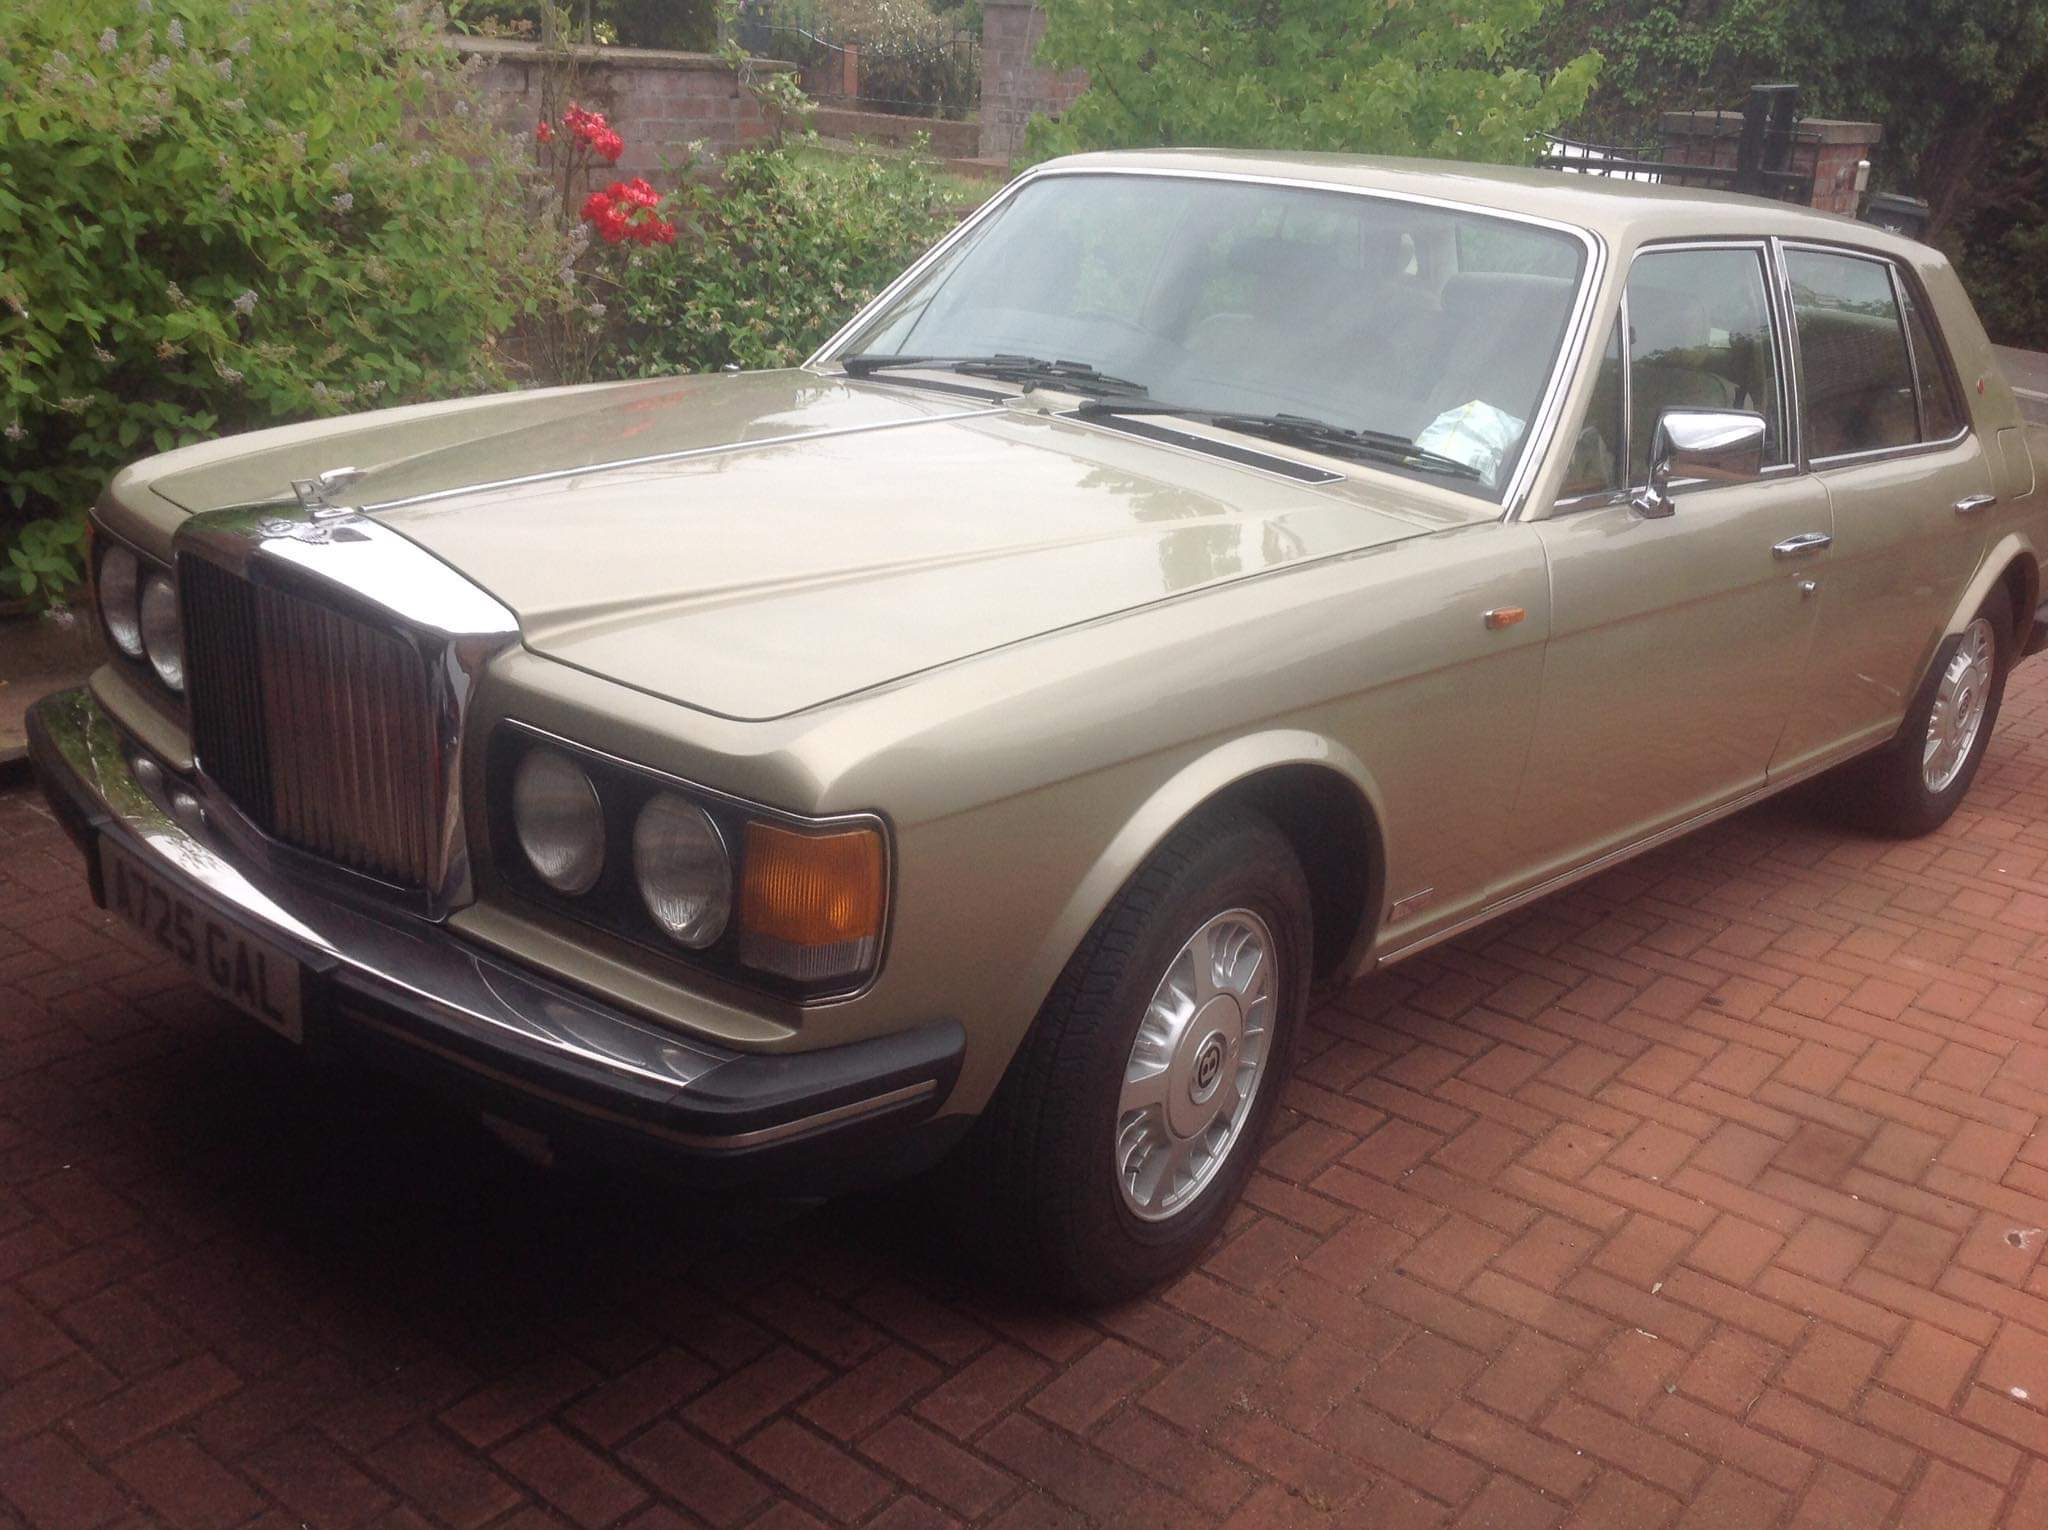 1983 Bentley Mulsanne with Turbo Engine For Sale (picture 1 of 10)